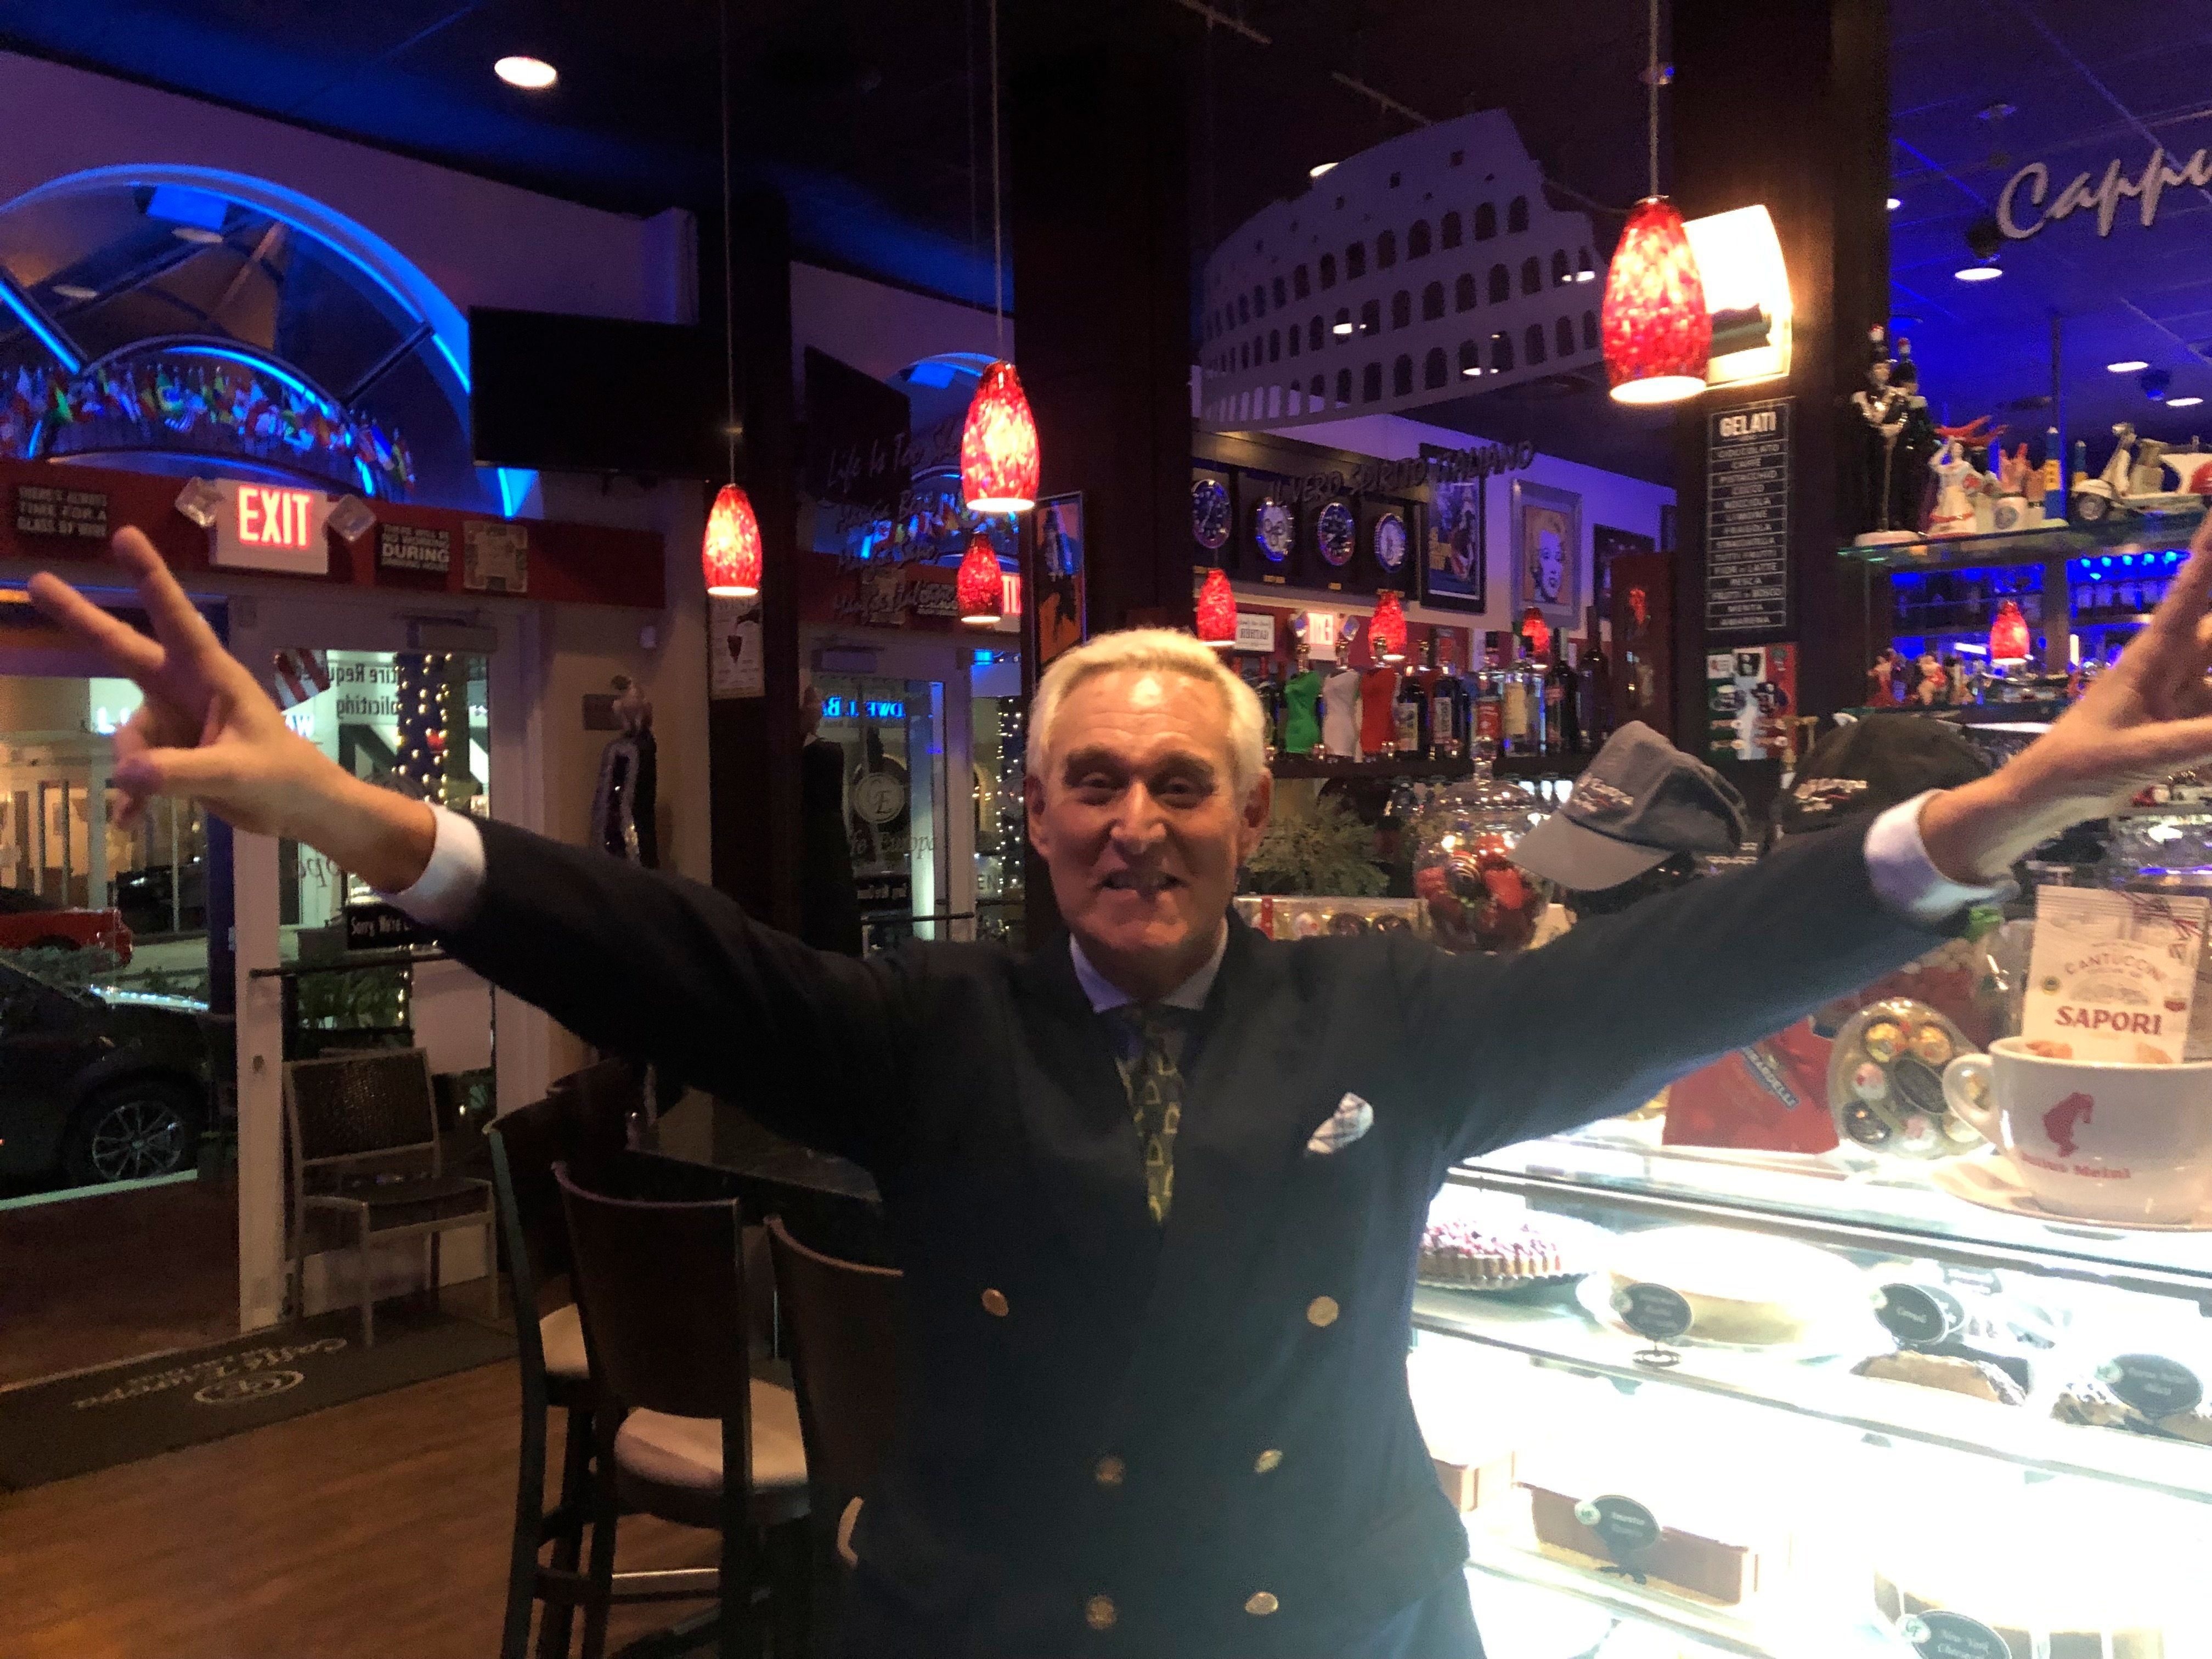 MIAMI, FL - FEBRUARY 4: (EXCLUSIVE COVERAGE) Trump ally Roger Stone (Born: August 27, 1952 age 66 years) seen in good sprits eating dinner. Roger Jason Stone Jr. is an American political consultant, lobbyist and strategist noted for his use of opposition research, usually for candidates of the Republican Party on February, 2019 in Miami, Florida ***NO NY NEWSPAPERS*** People: Roger Stone Credit: Hoo-me.com/MediaPunch /IPX